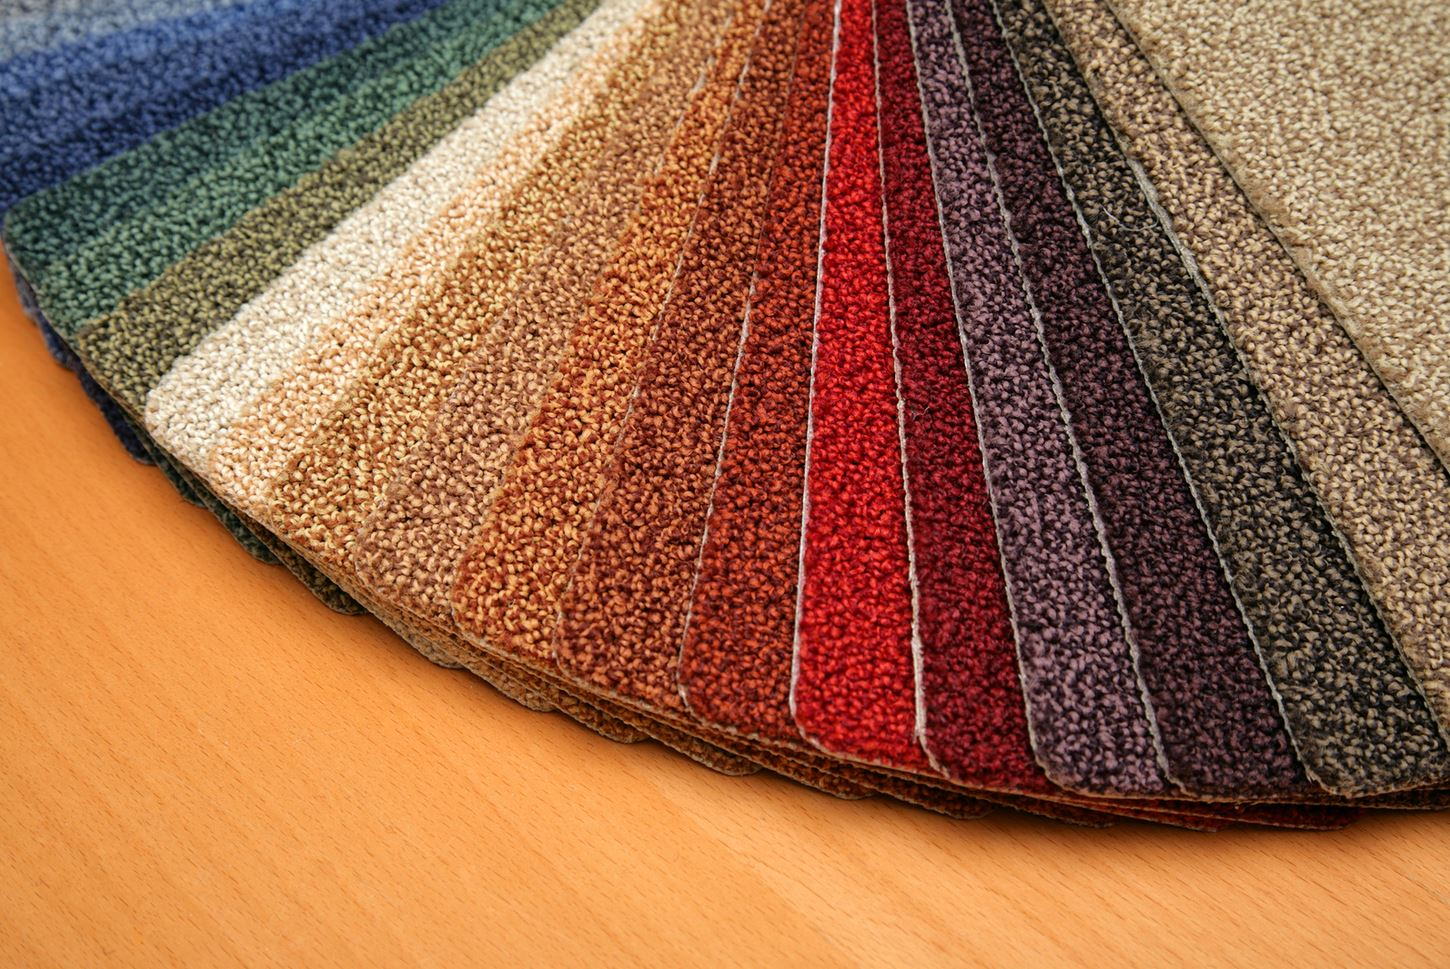 When It Comes To Choosing That Modern Carpet Design For Your Home  Renovation, The First Step Is Considering Whether You Need A Formal Or  Informal Design.